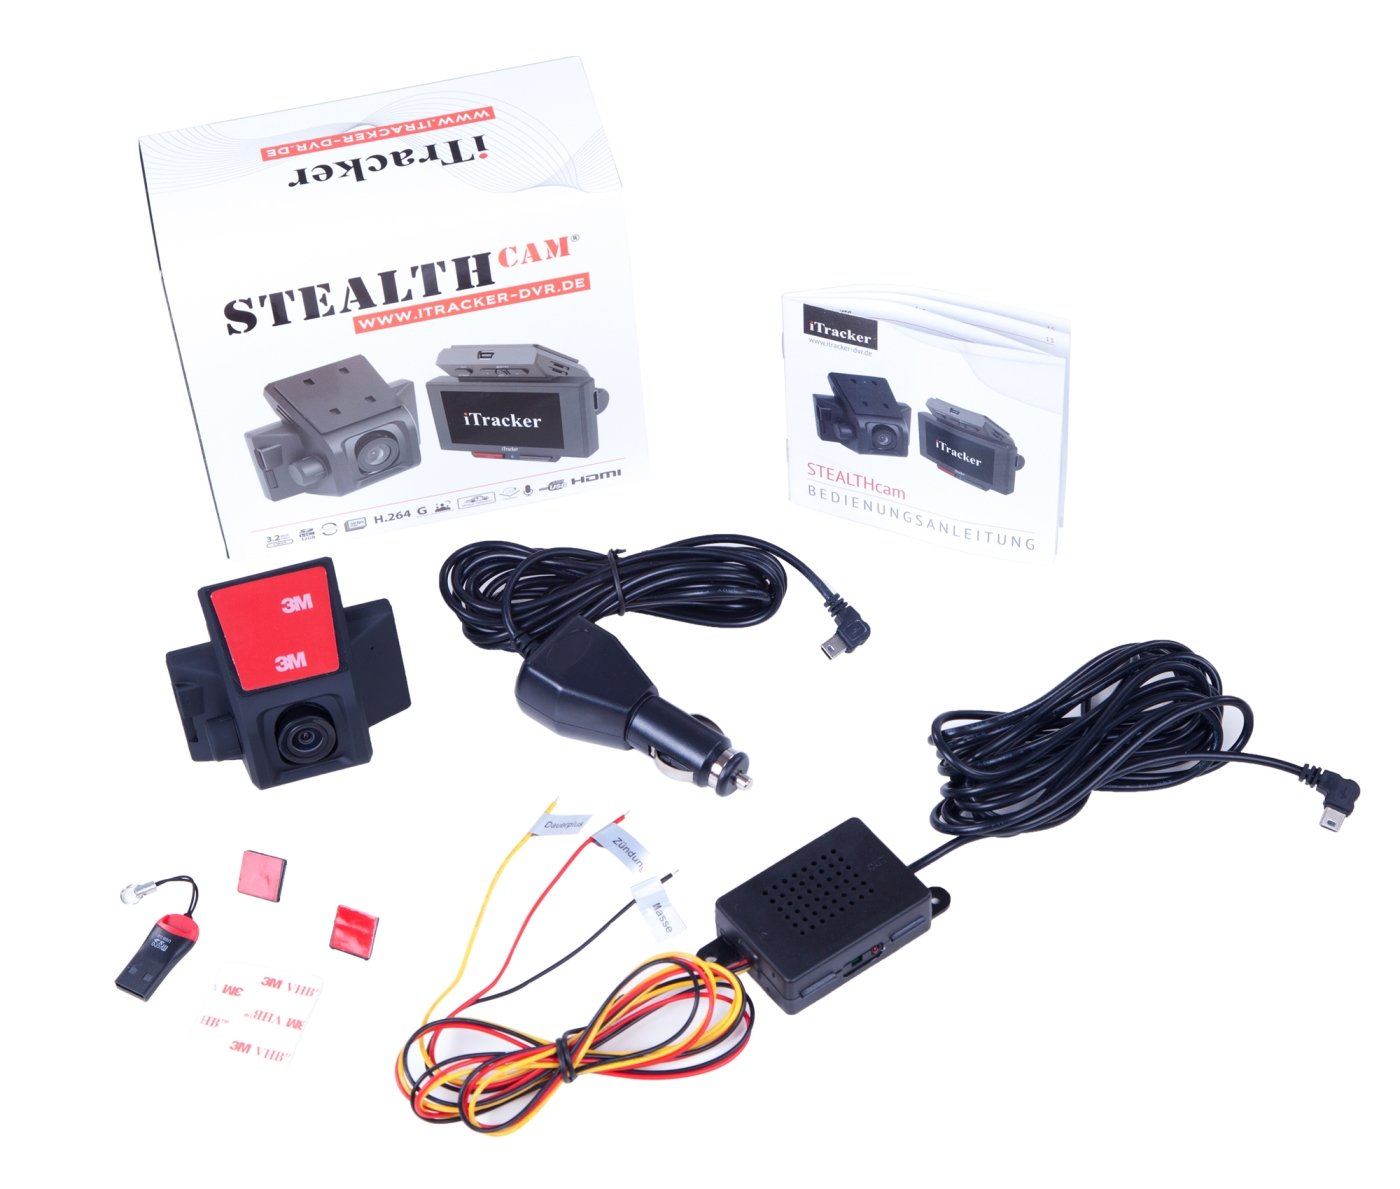 Dashcam iTracker STEALTHcam Test 2014